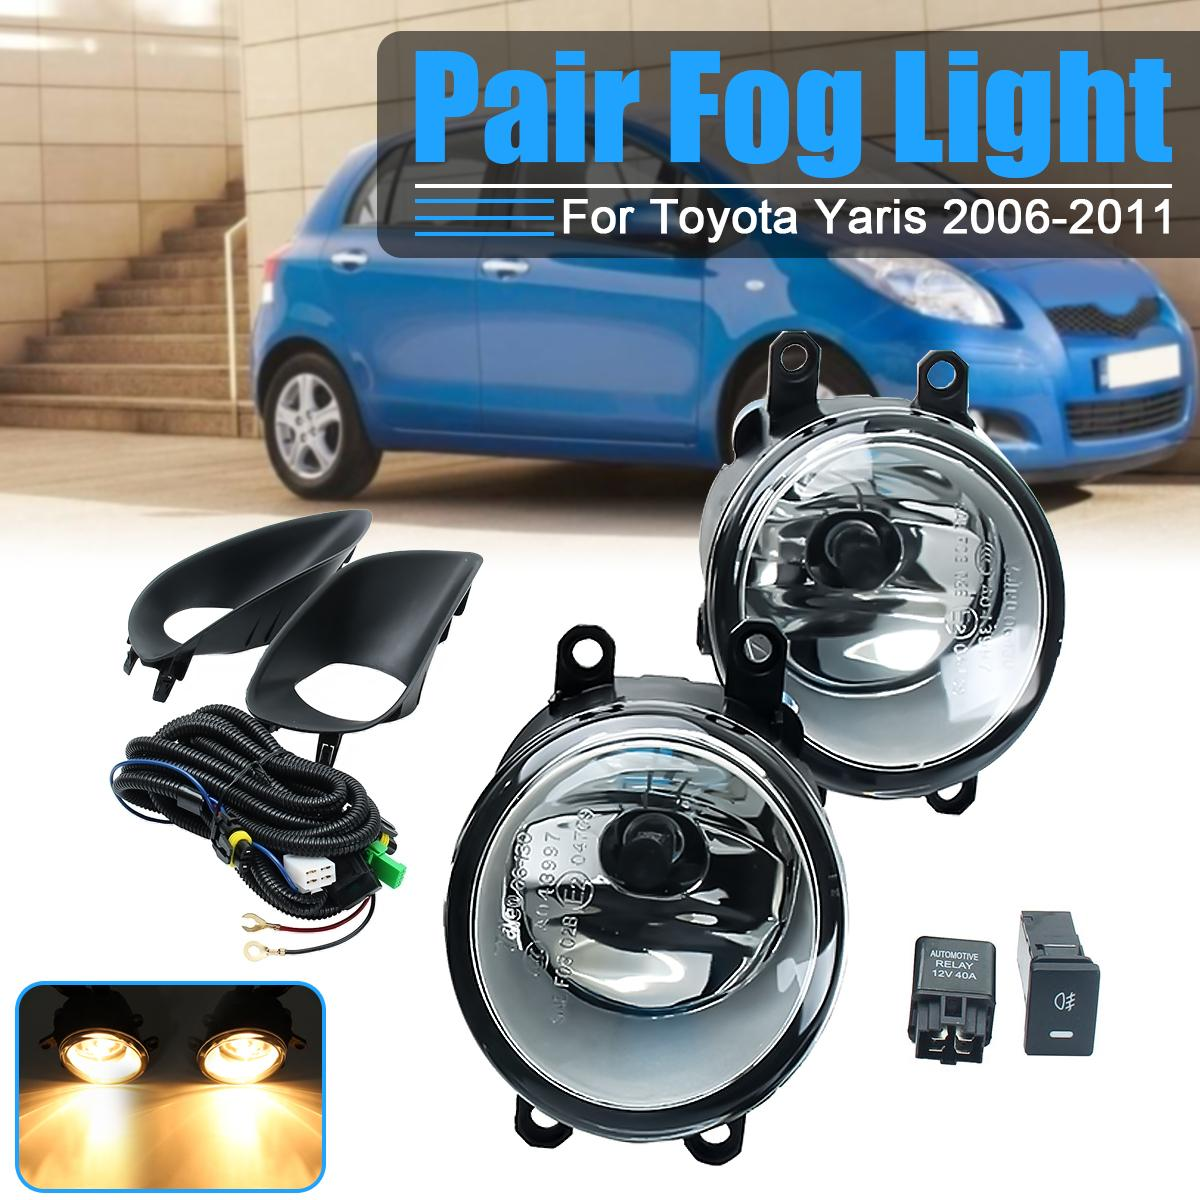 Pair Car Front Clear Fog Light + Switch Harness Cover For Toyota Yaris Sedan 4DR 2006 2007 2008 2009 2010 2011 1set front chrome housing clear lens driving bumper fog light lamp grille cover switch line kit for 2007 2009 toyota camry